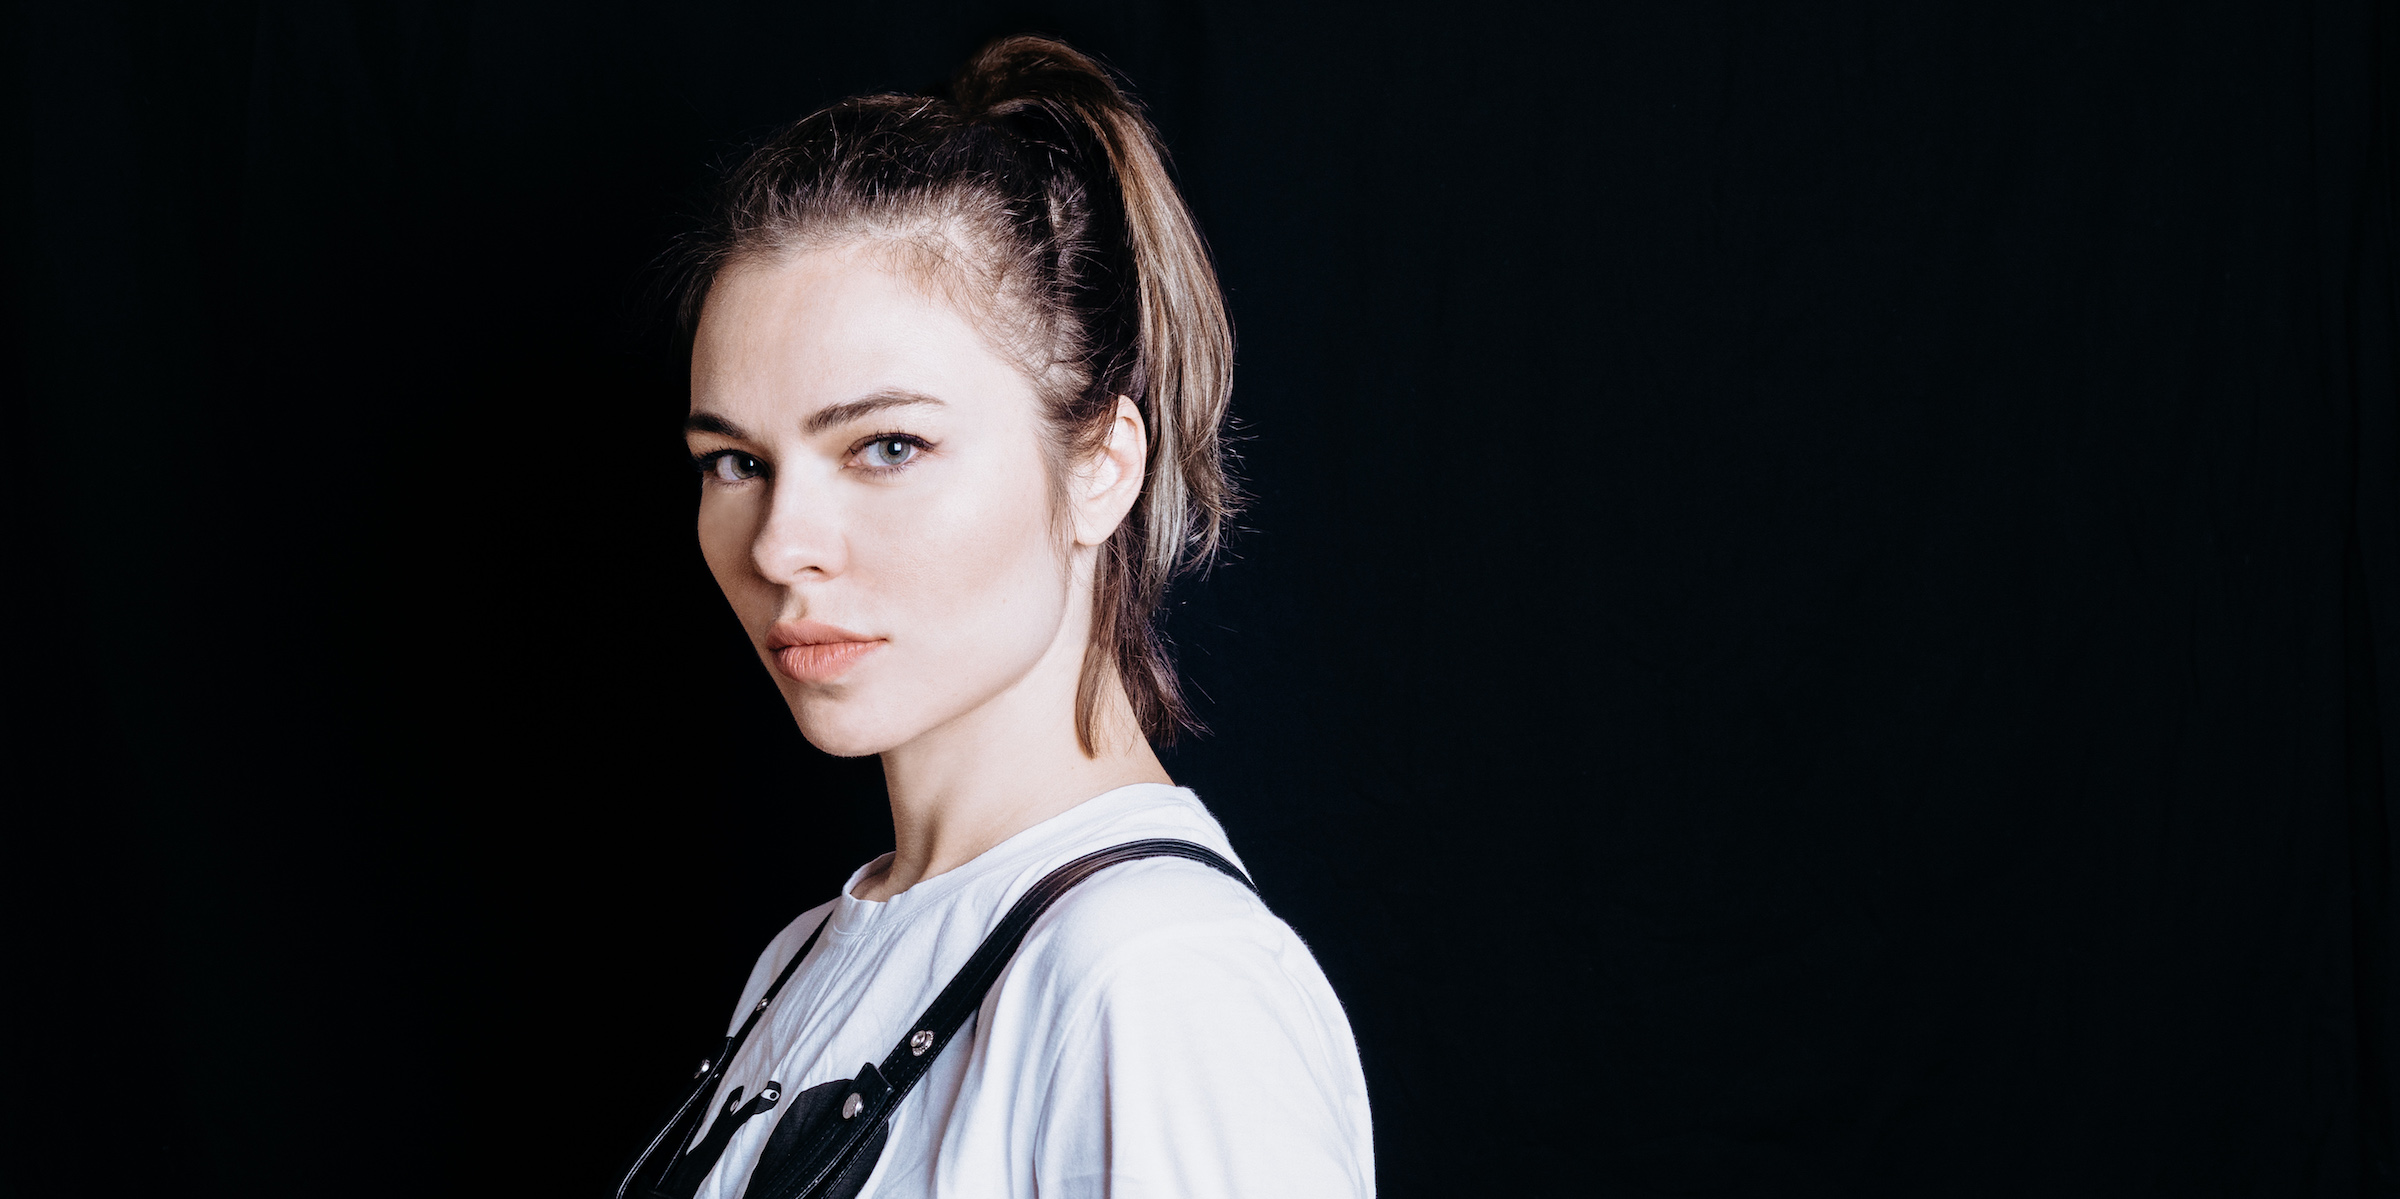 Pictures Nina Kraviz nude (37 foto and video), Topless, Leaked, Boobs, cameltoe 2015